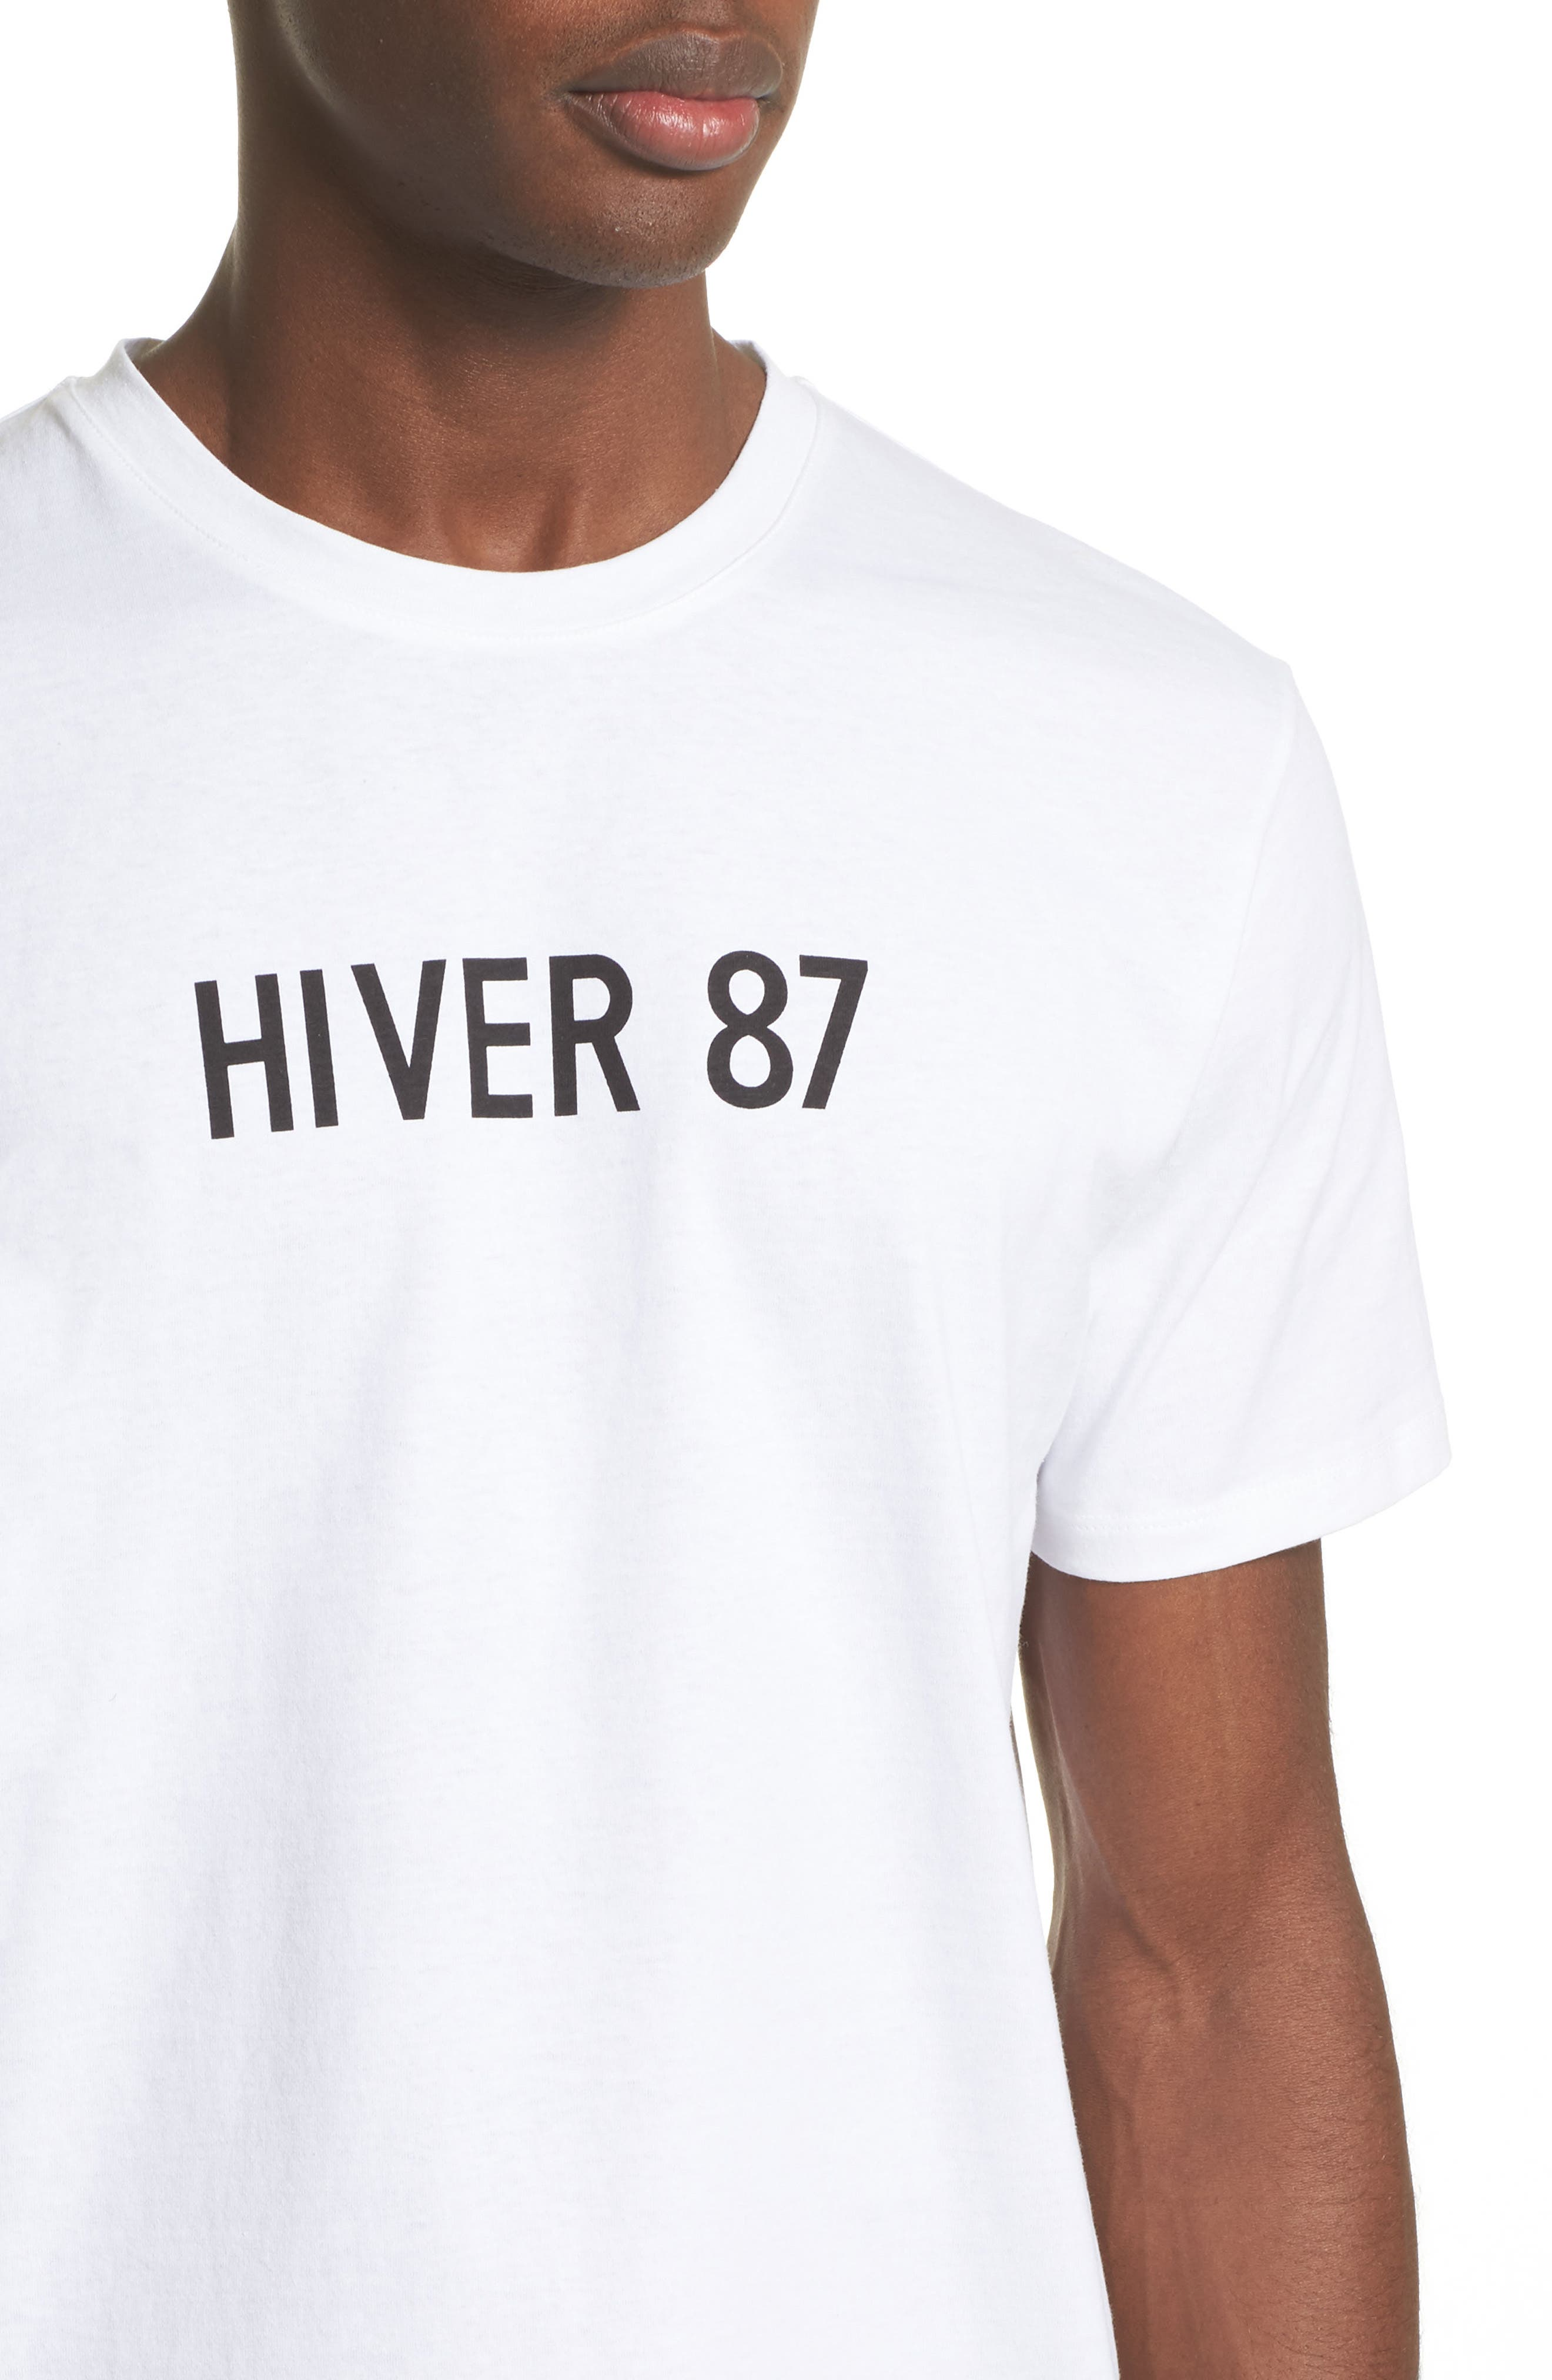 Hiver 87 T-Shirt,                             Alternate thumbnail 4, color,                             Blanc